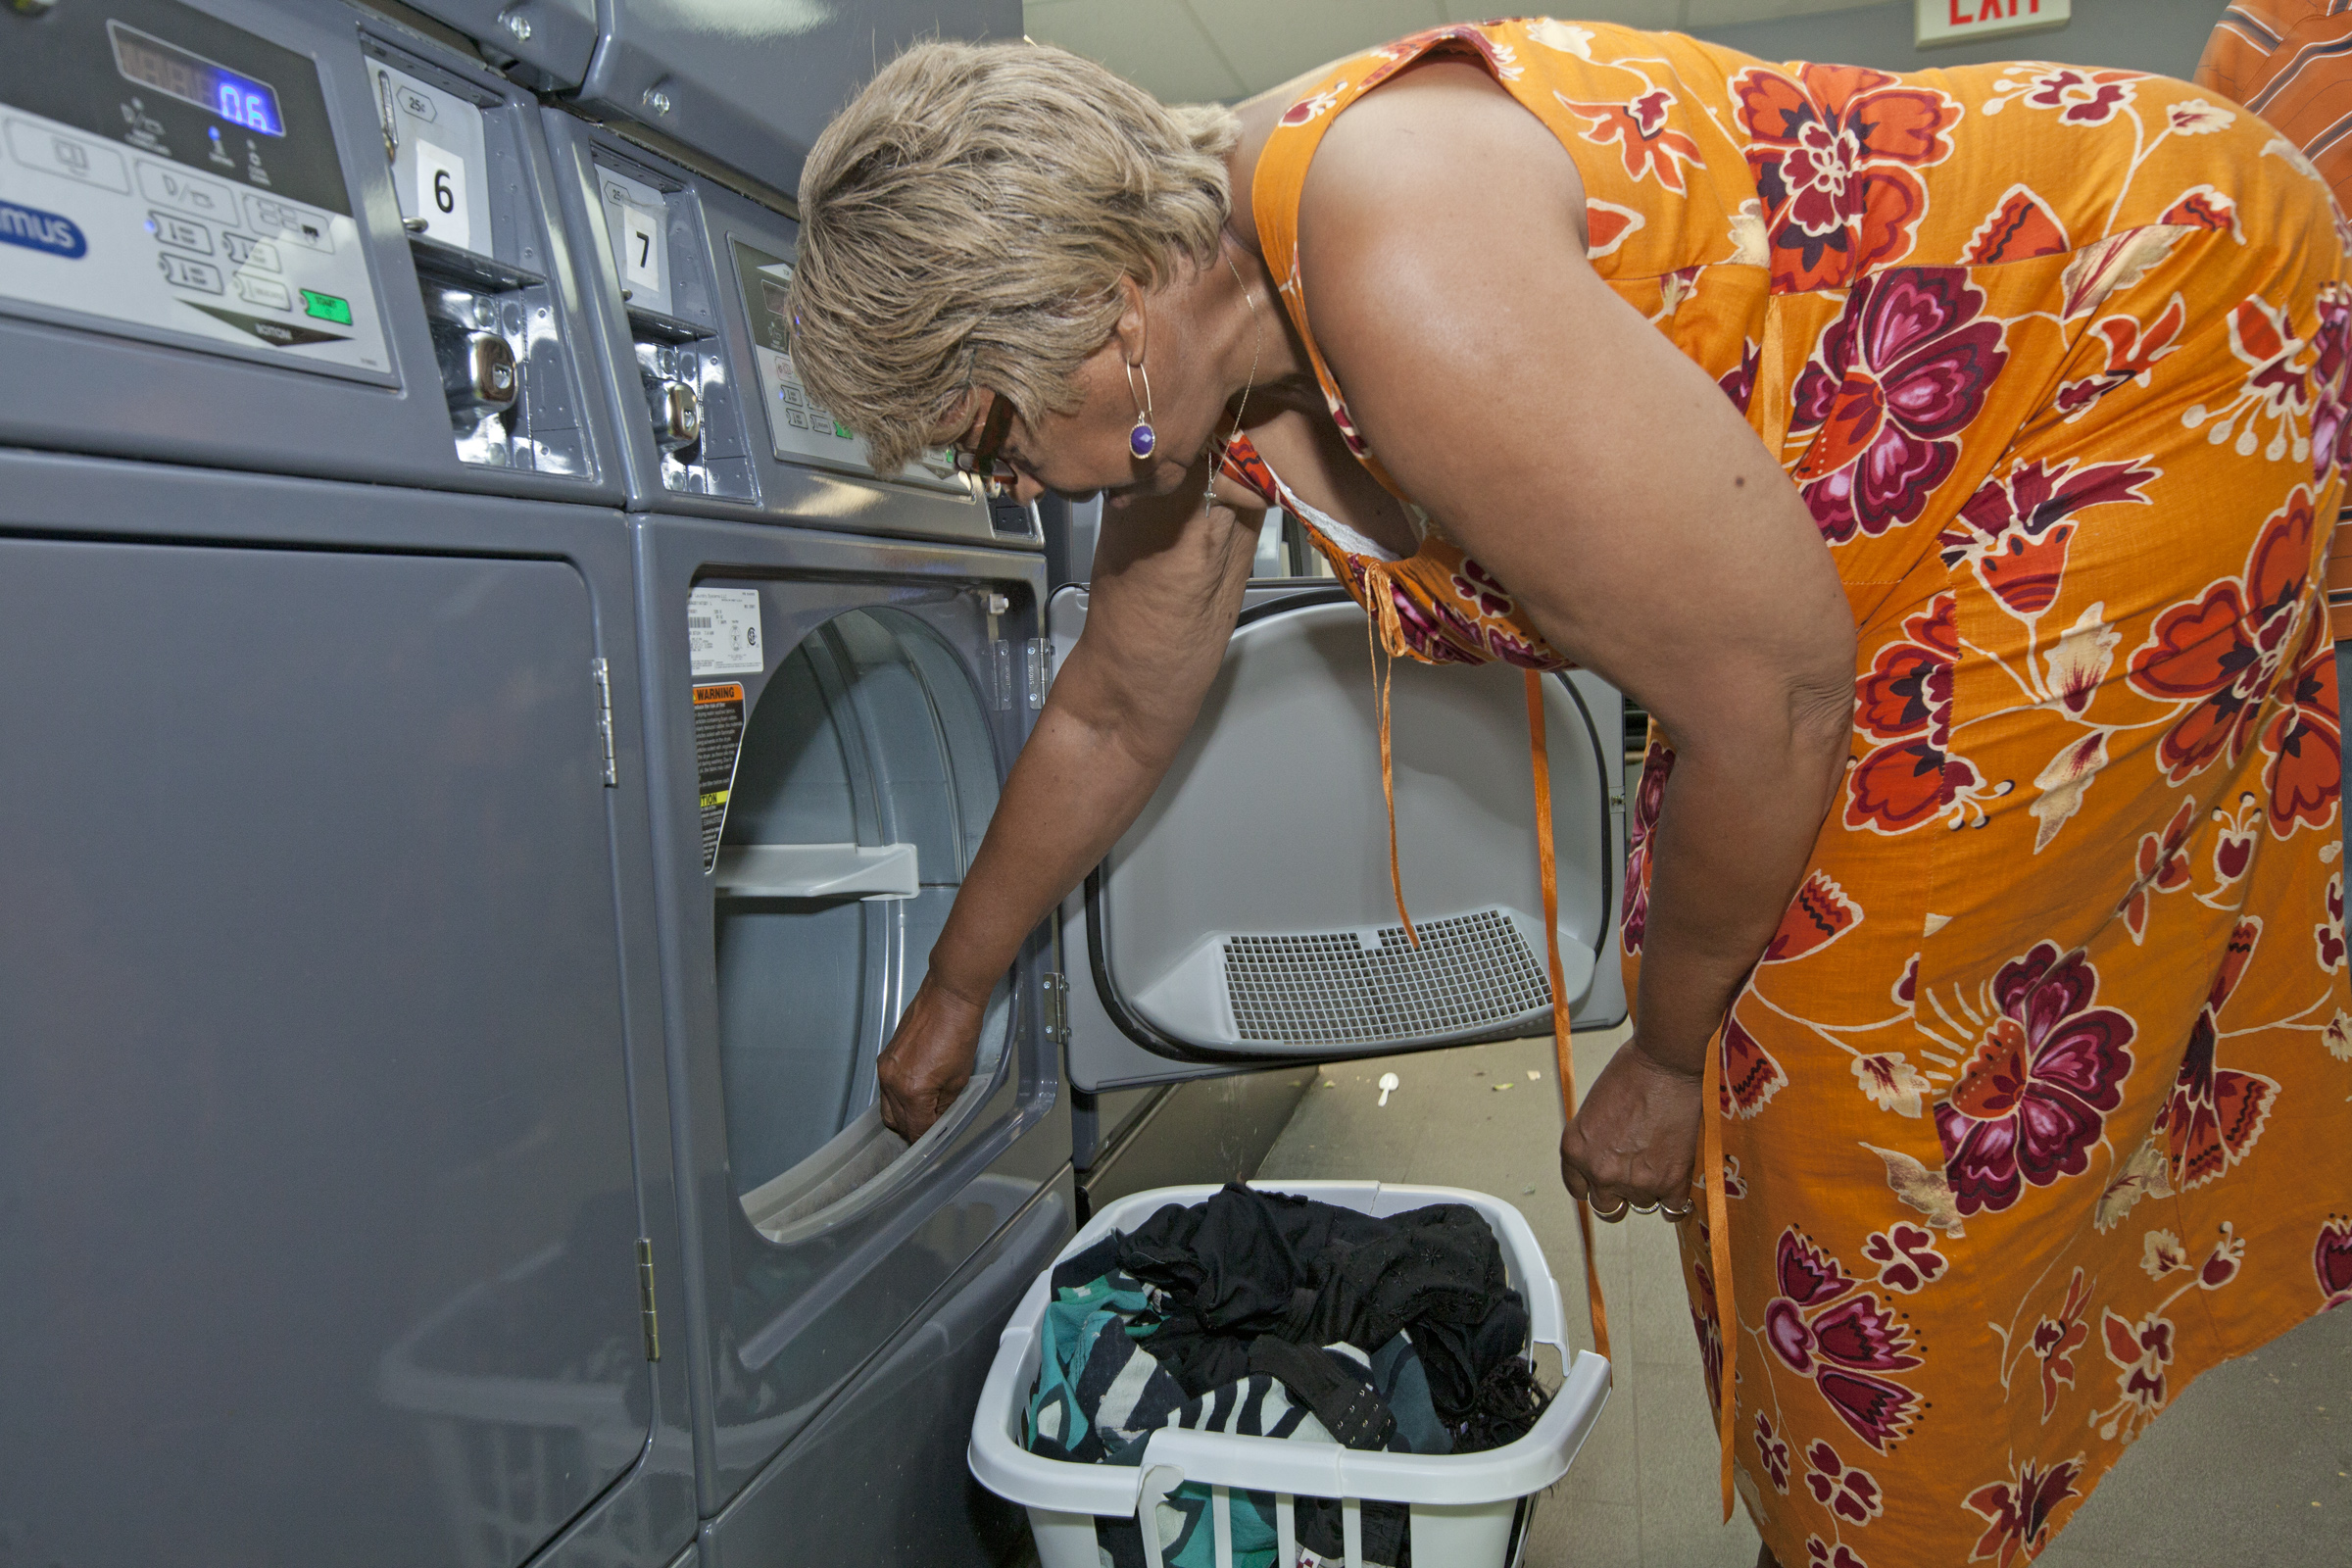 Affordable laundry and shower facilities are available to low income neighbors.